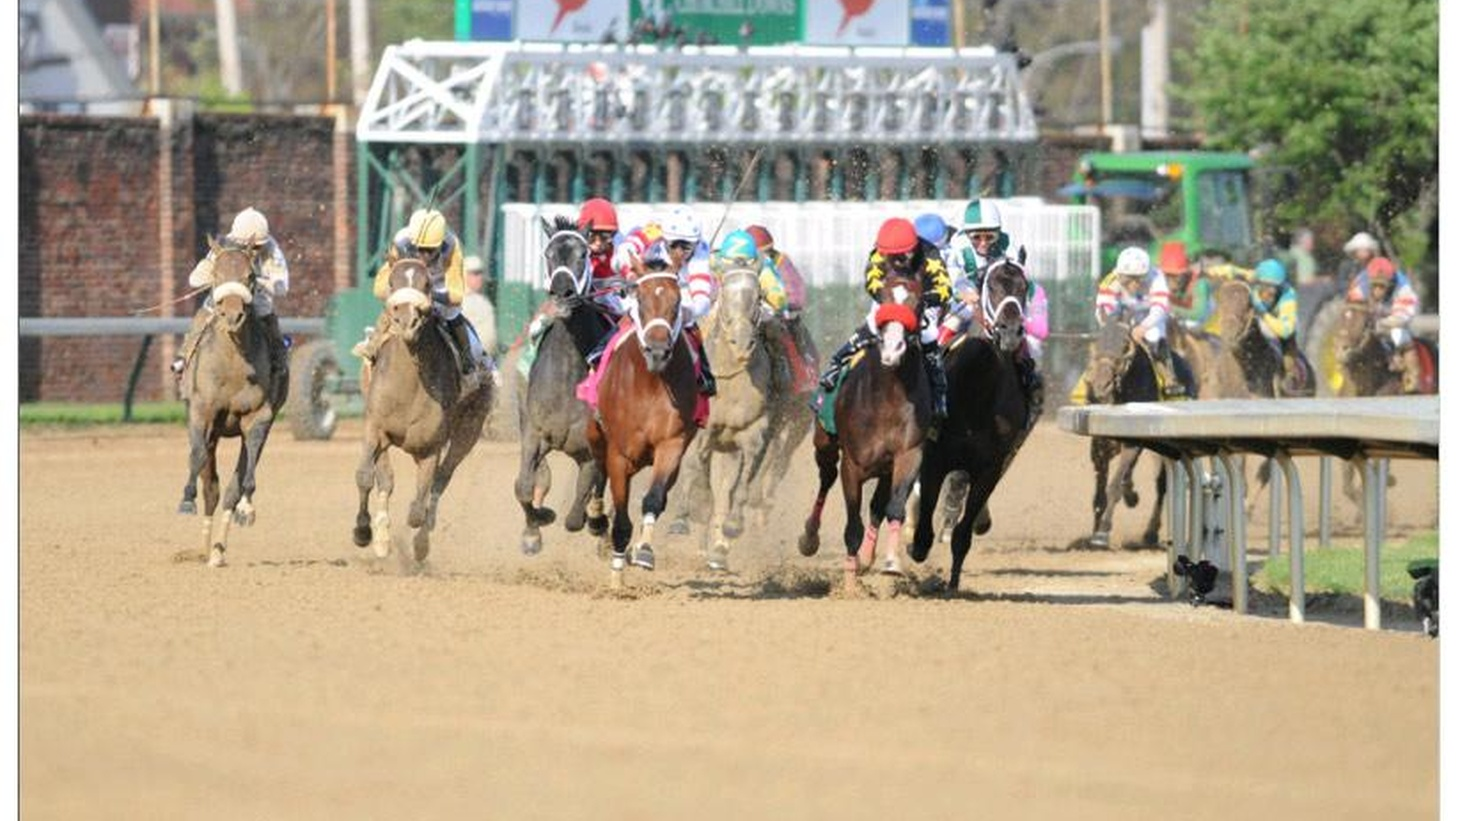 The Kentucky Derby runs this Saturday and it's no surprise that the economy foreshadows a toned-down day in blue-grass country. The Derby weekend traditionally pulls in some $120 million in revenue for the Louisville area but the highest predictions for this year's event are to perhaps hit $100 million...